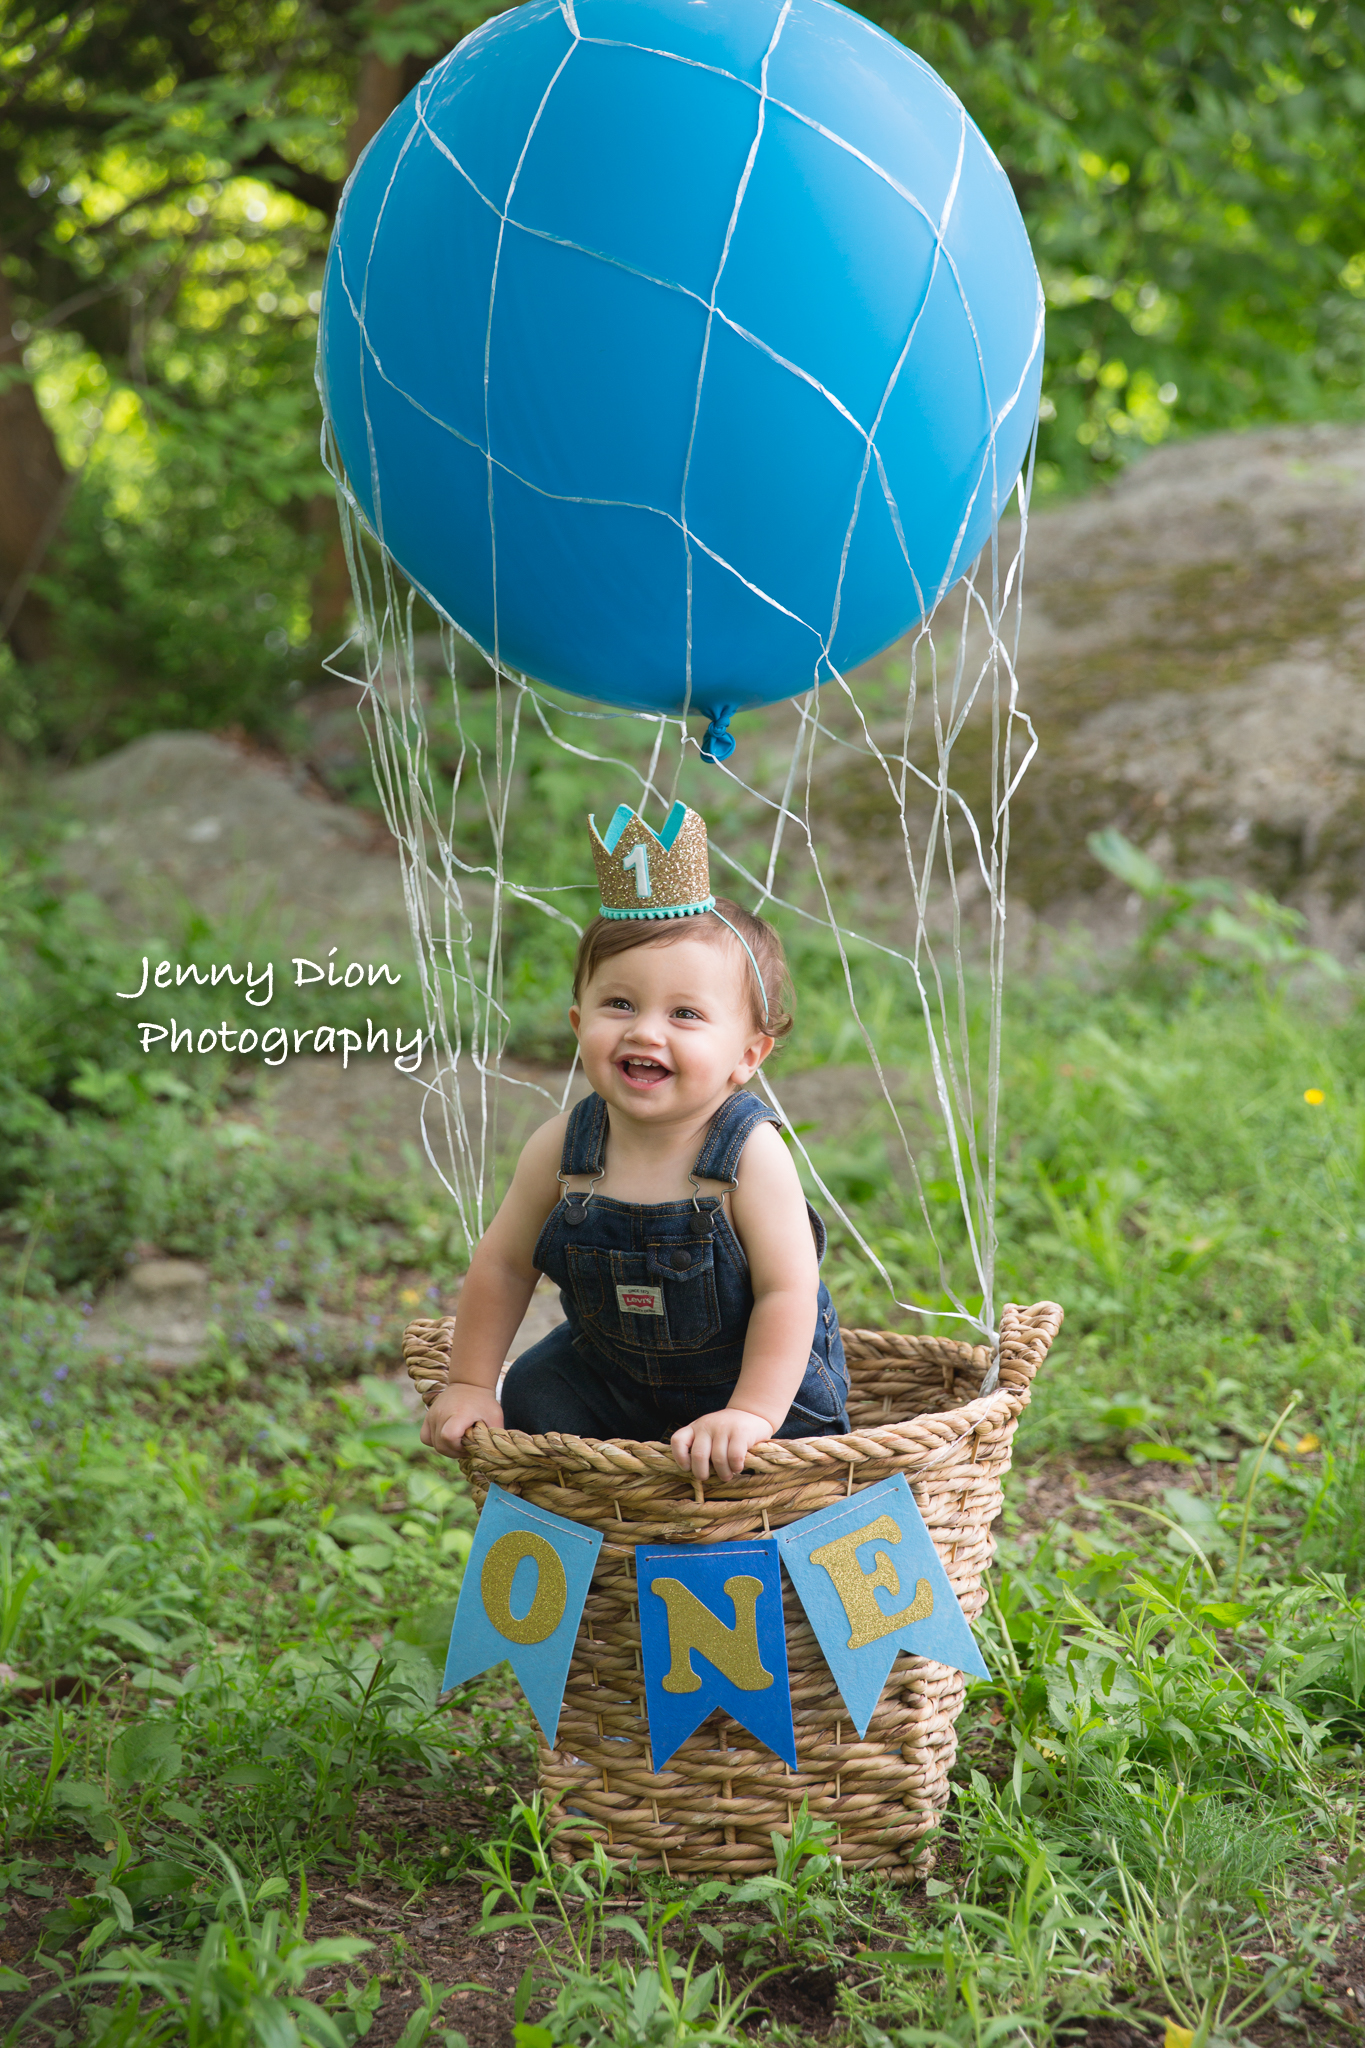 Mommy brought this cool balloon for a shot outdoors.